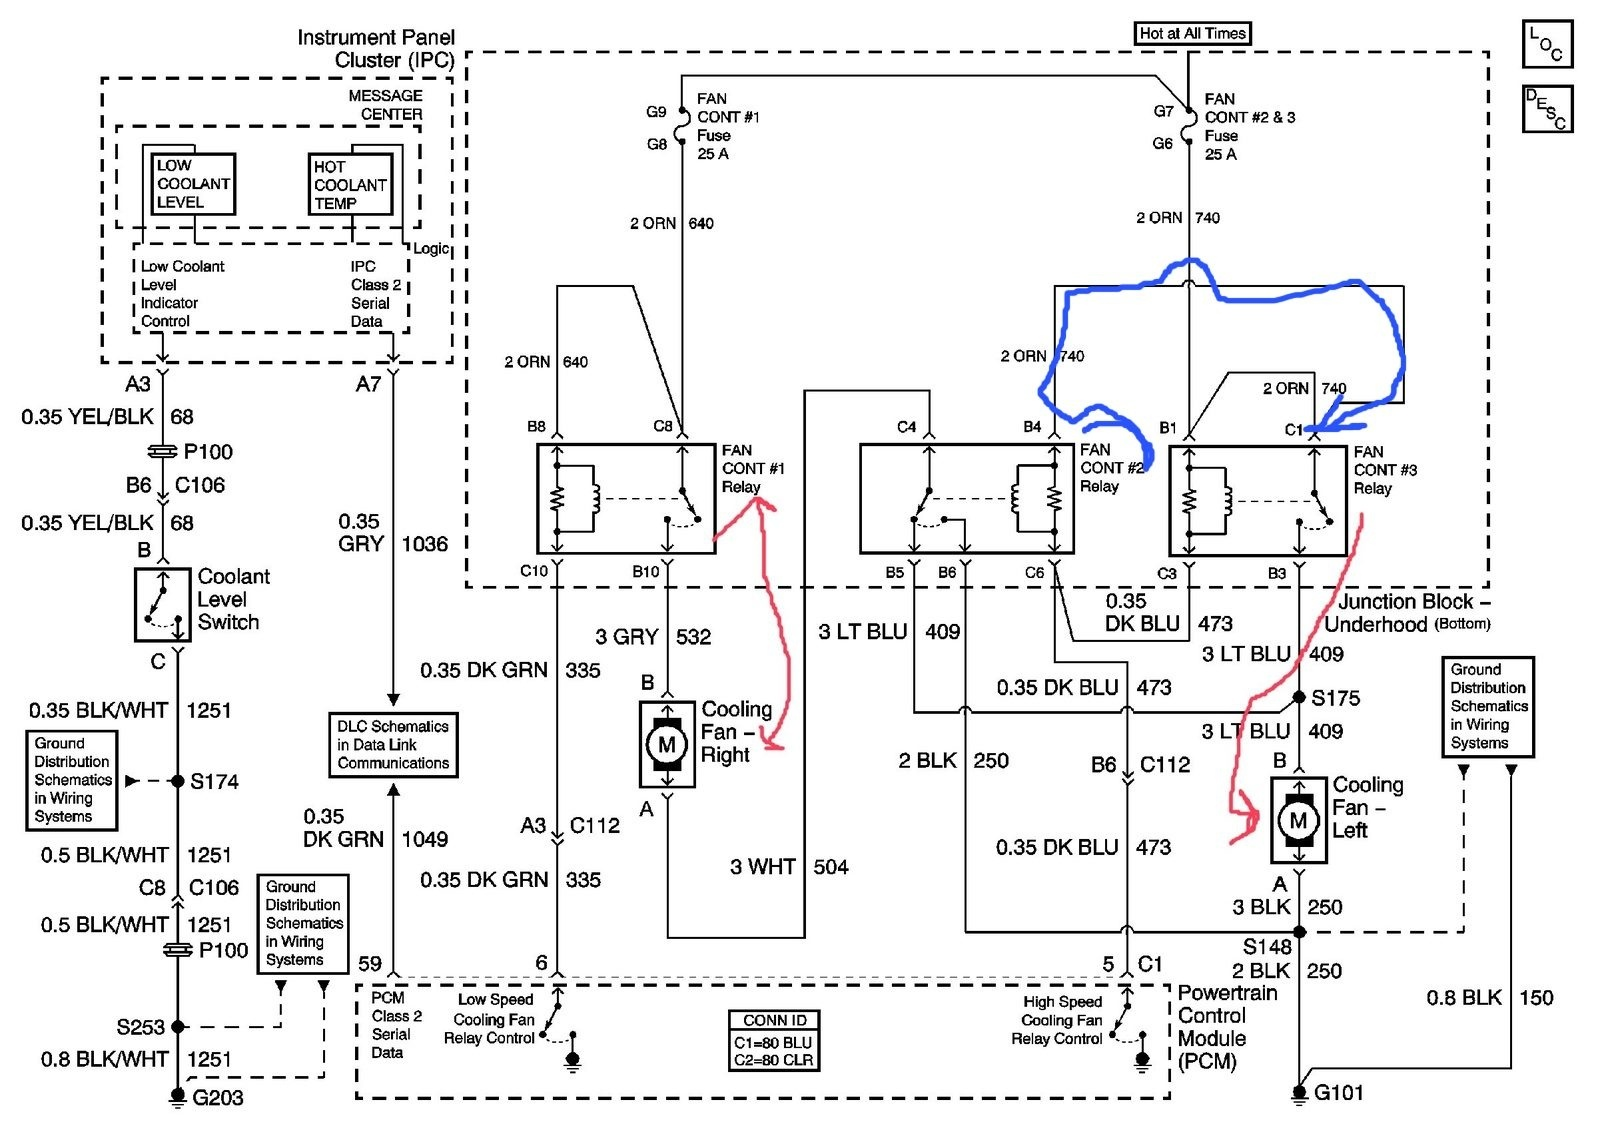 2011 Chevy Impala Wiring Diagram Archive Of Automotive 2003 Sterling Stereo Schematic For Detailed Diagrams Rh Standrewsthorntonheath Co Uk Fuel